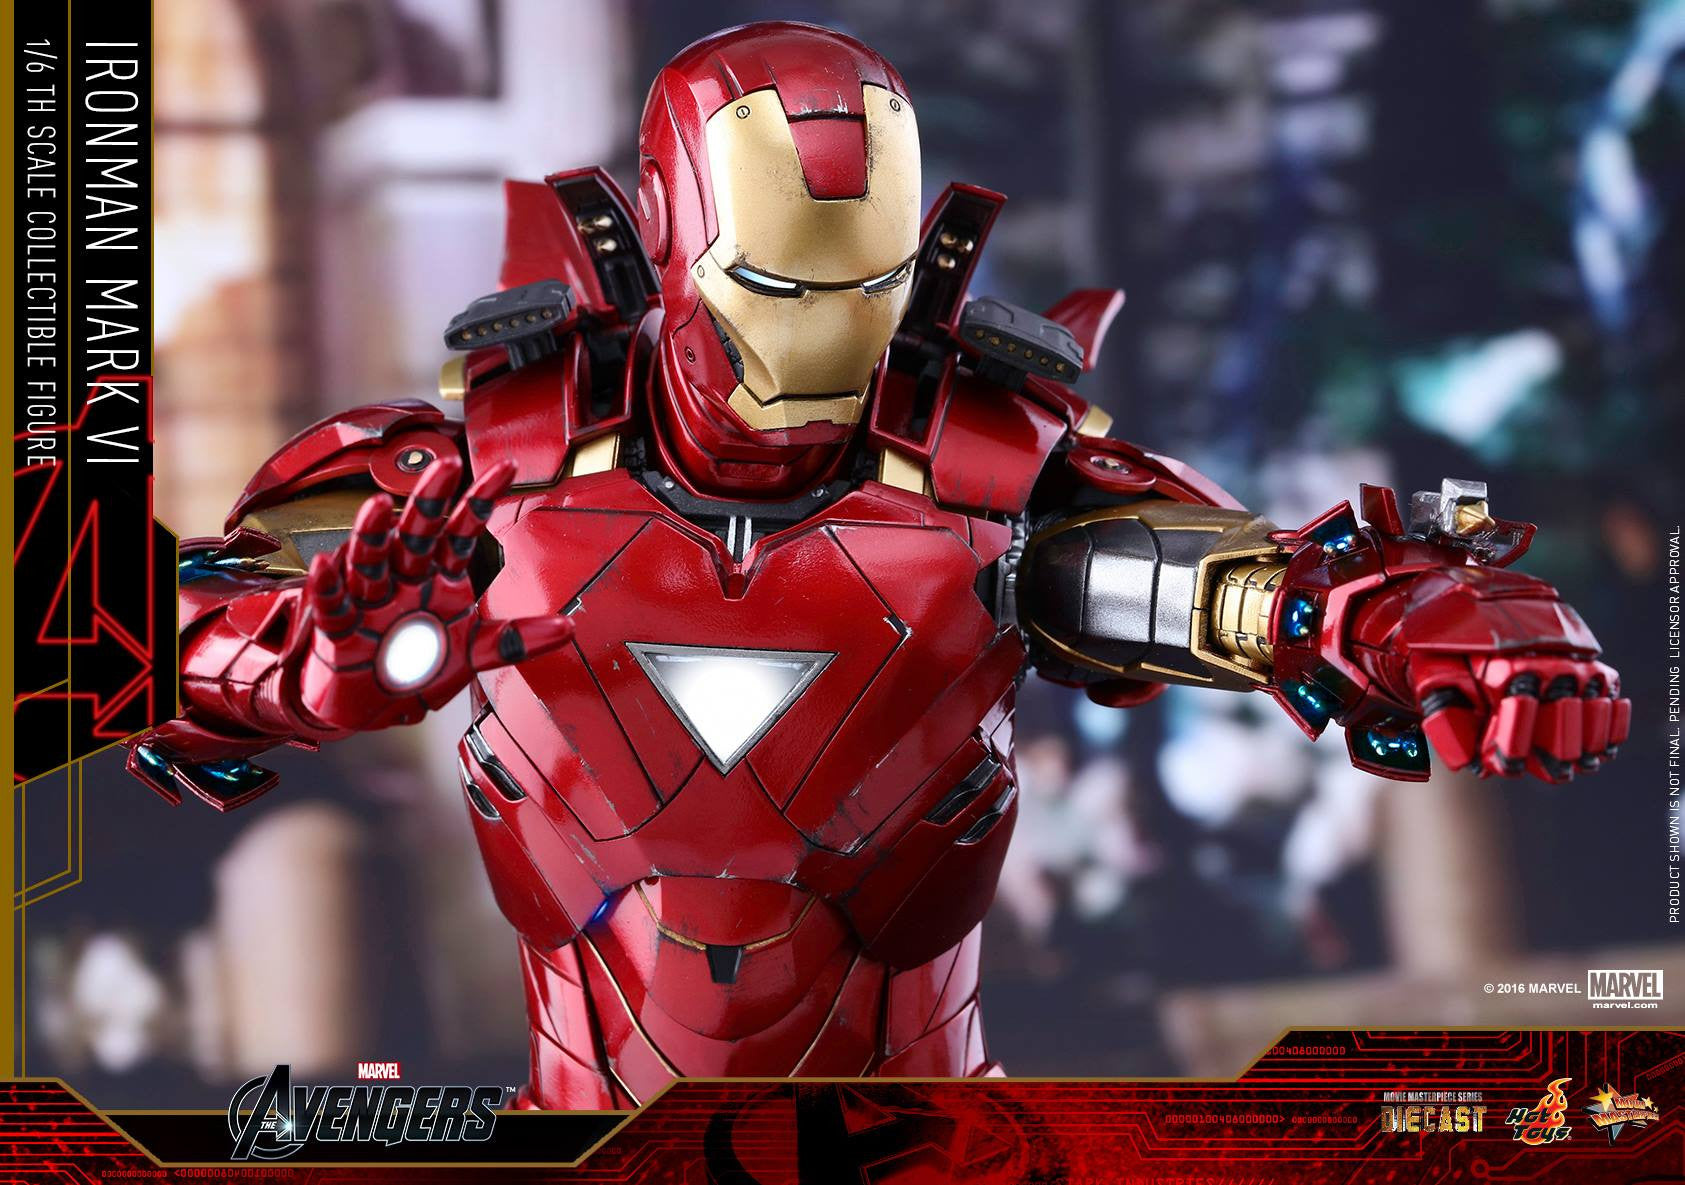 Hot Toys - MMS378D17 - The Avengers - Iron Man Mark VI (DIECAST) (Normal Edition) - Marvelous Toys - 19